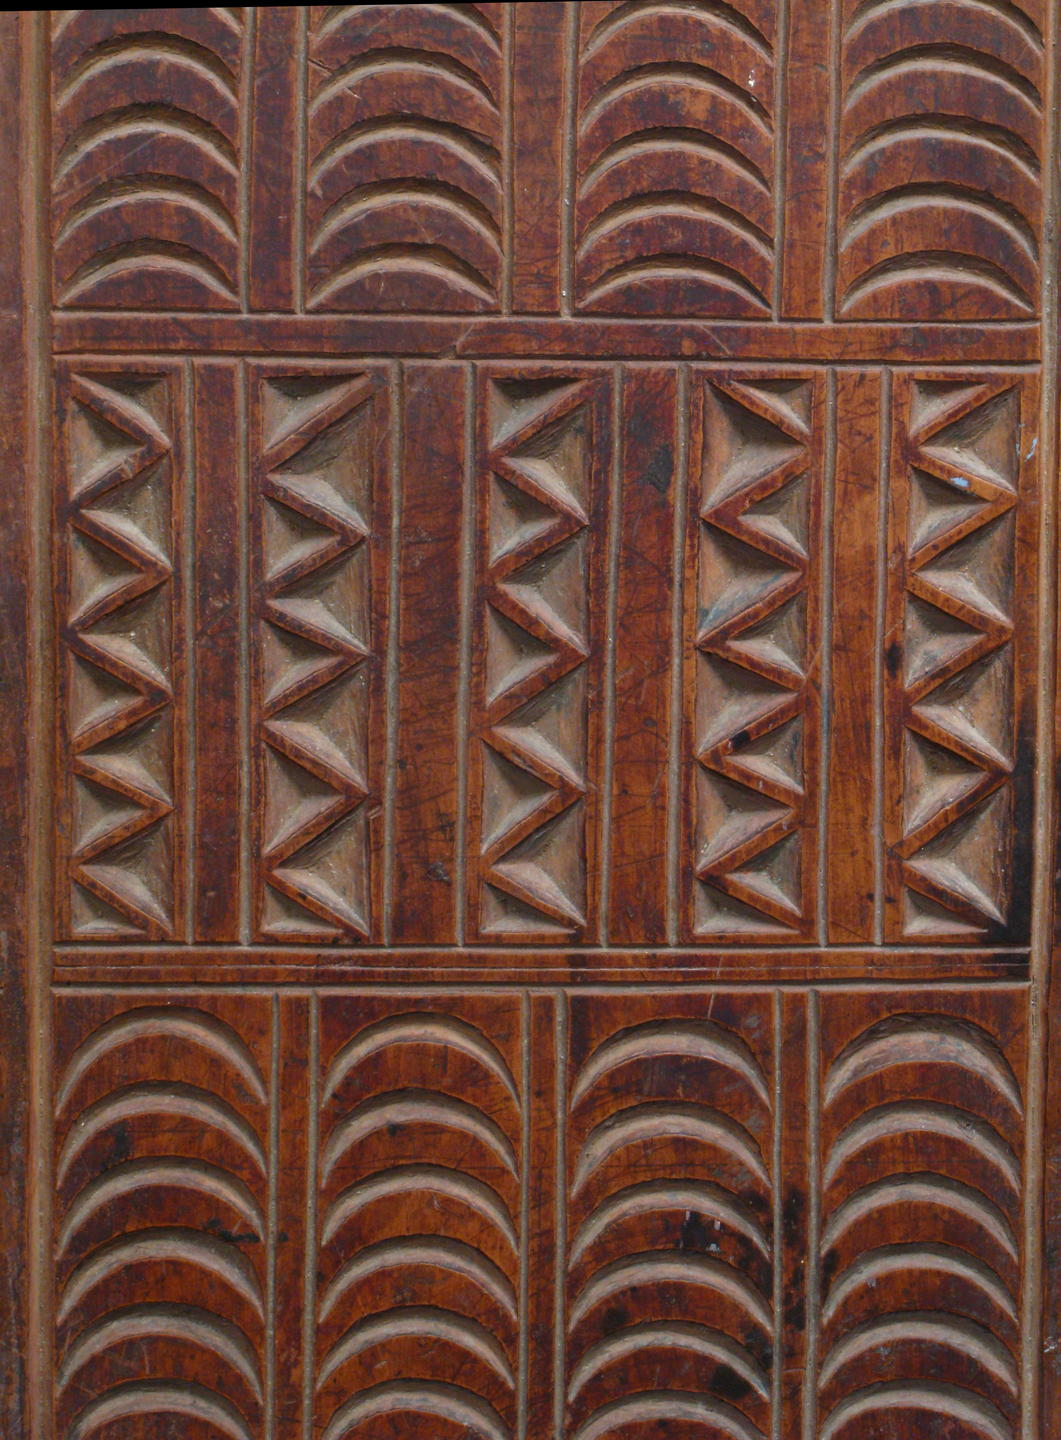 2228 EDITED Upeti Tapa Cloth Pattern Board detail2.jpg